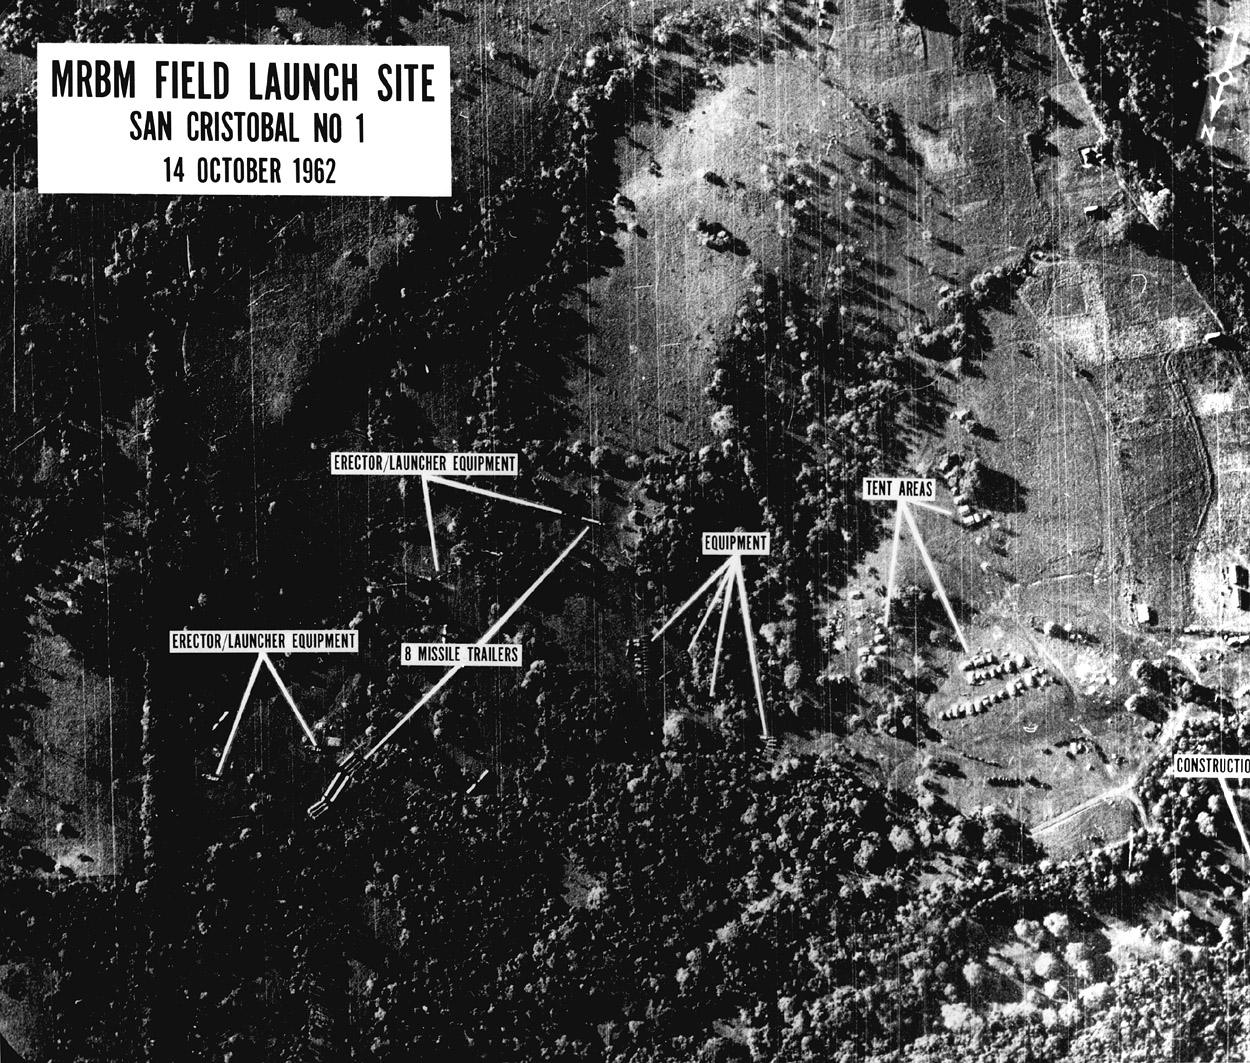 One of the first images of missile bases under construction shown to President Kennedy on the morning of October 16. (John F. Kennedy Presidential Library and Museum/Wikimedia)